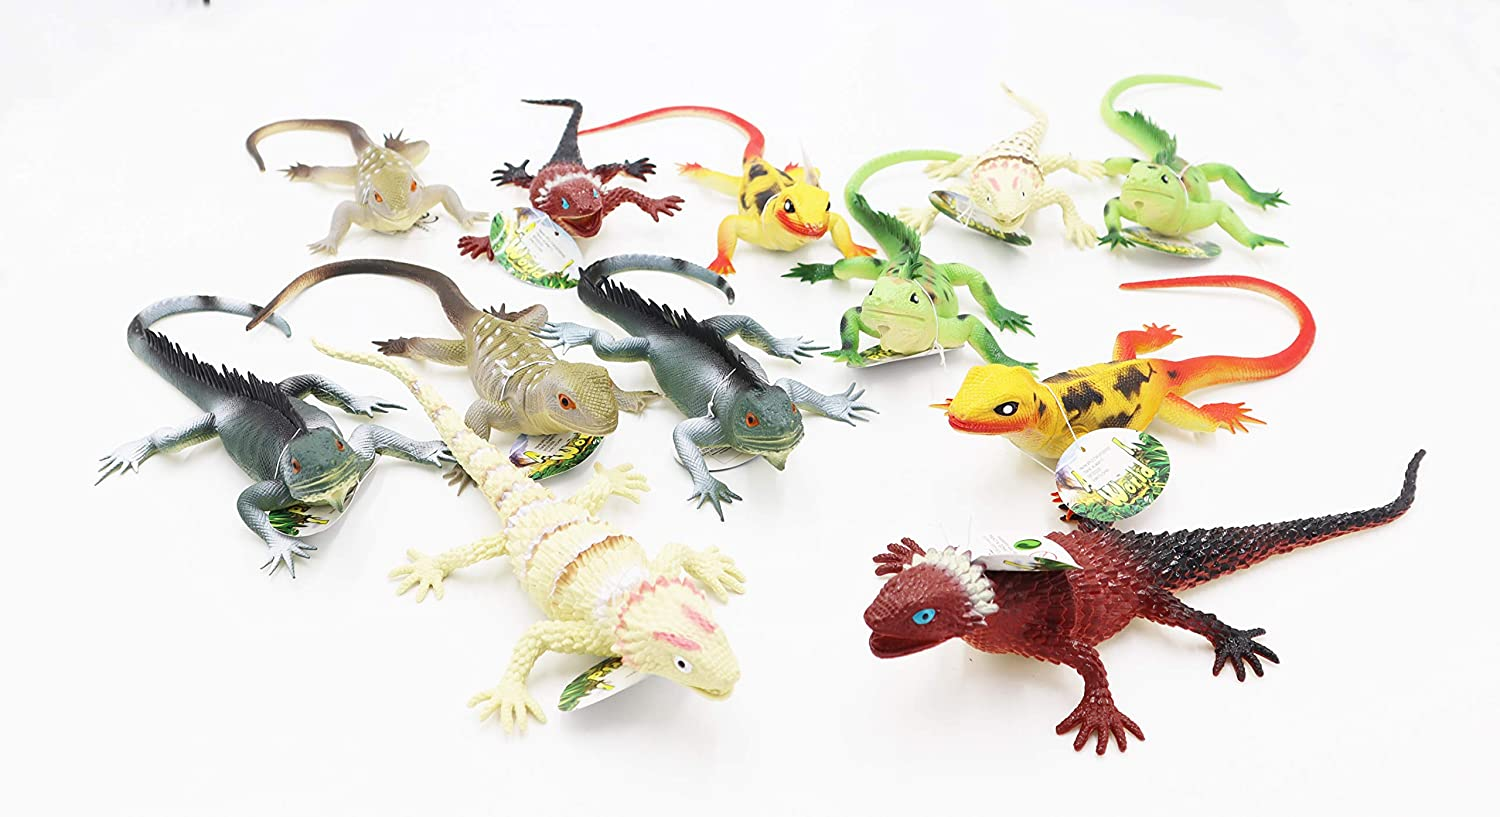 National products Jumbo Lizard Toys 12 PCS Set L We OFFer at cheap prices Realistic 11''